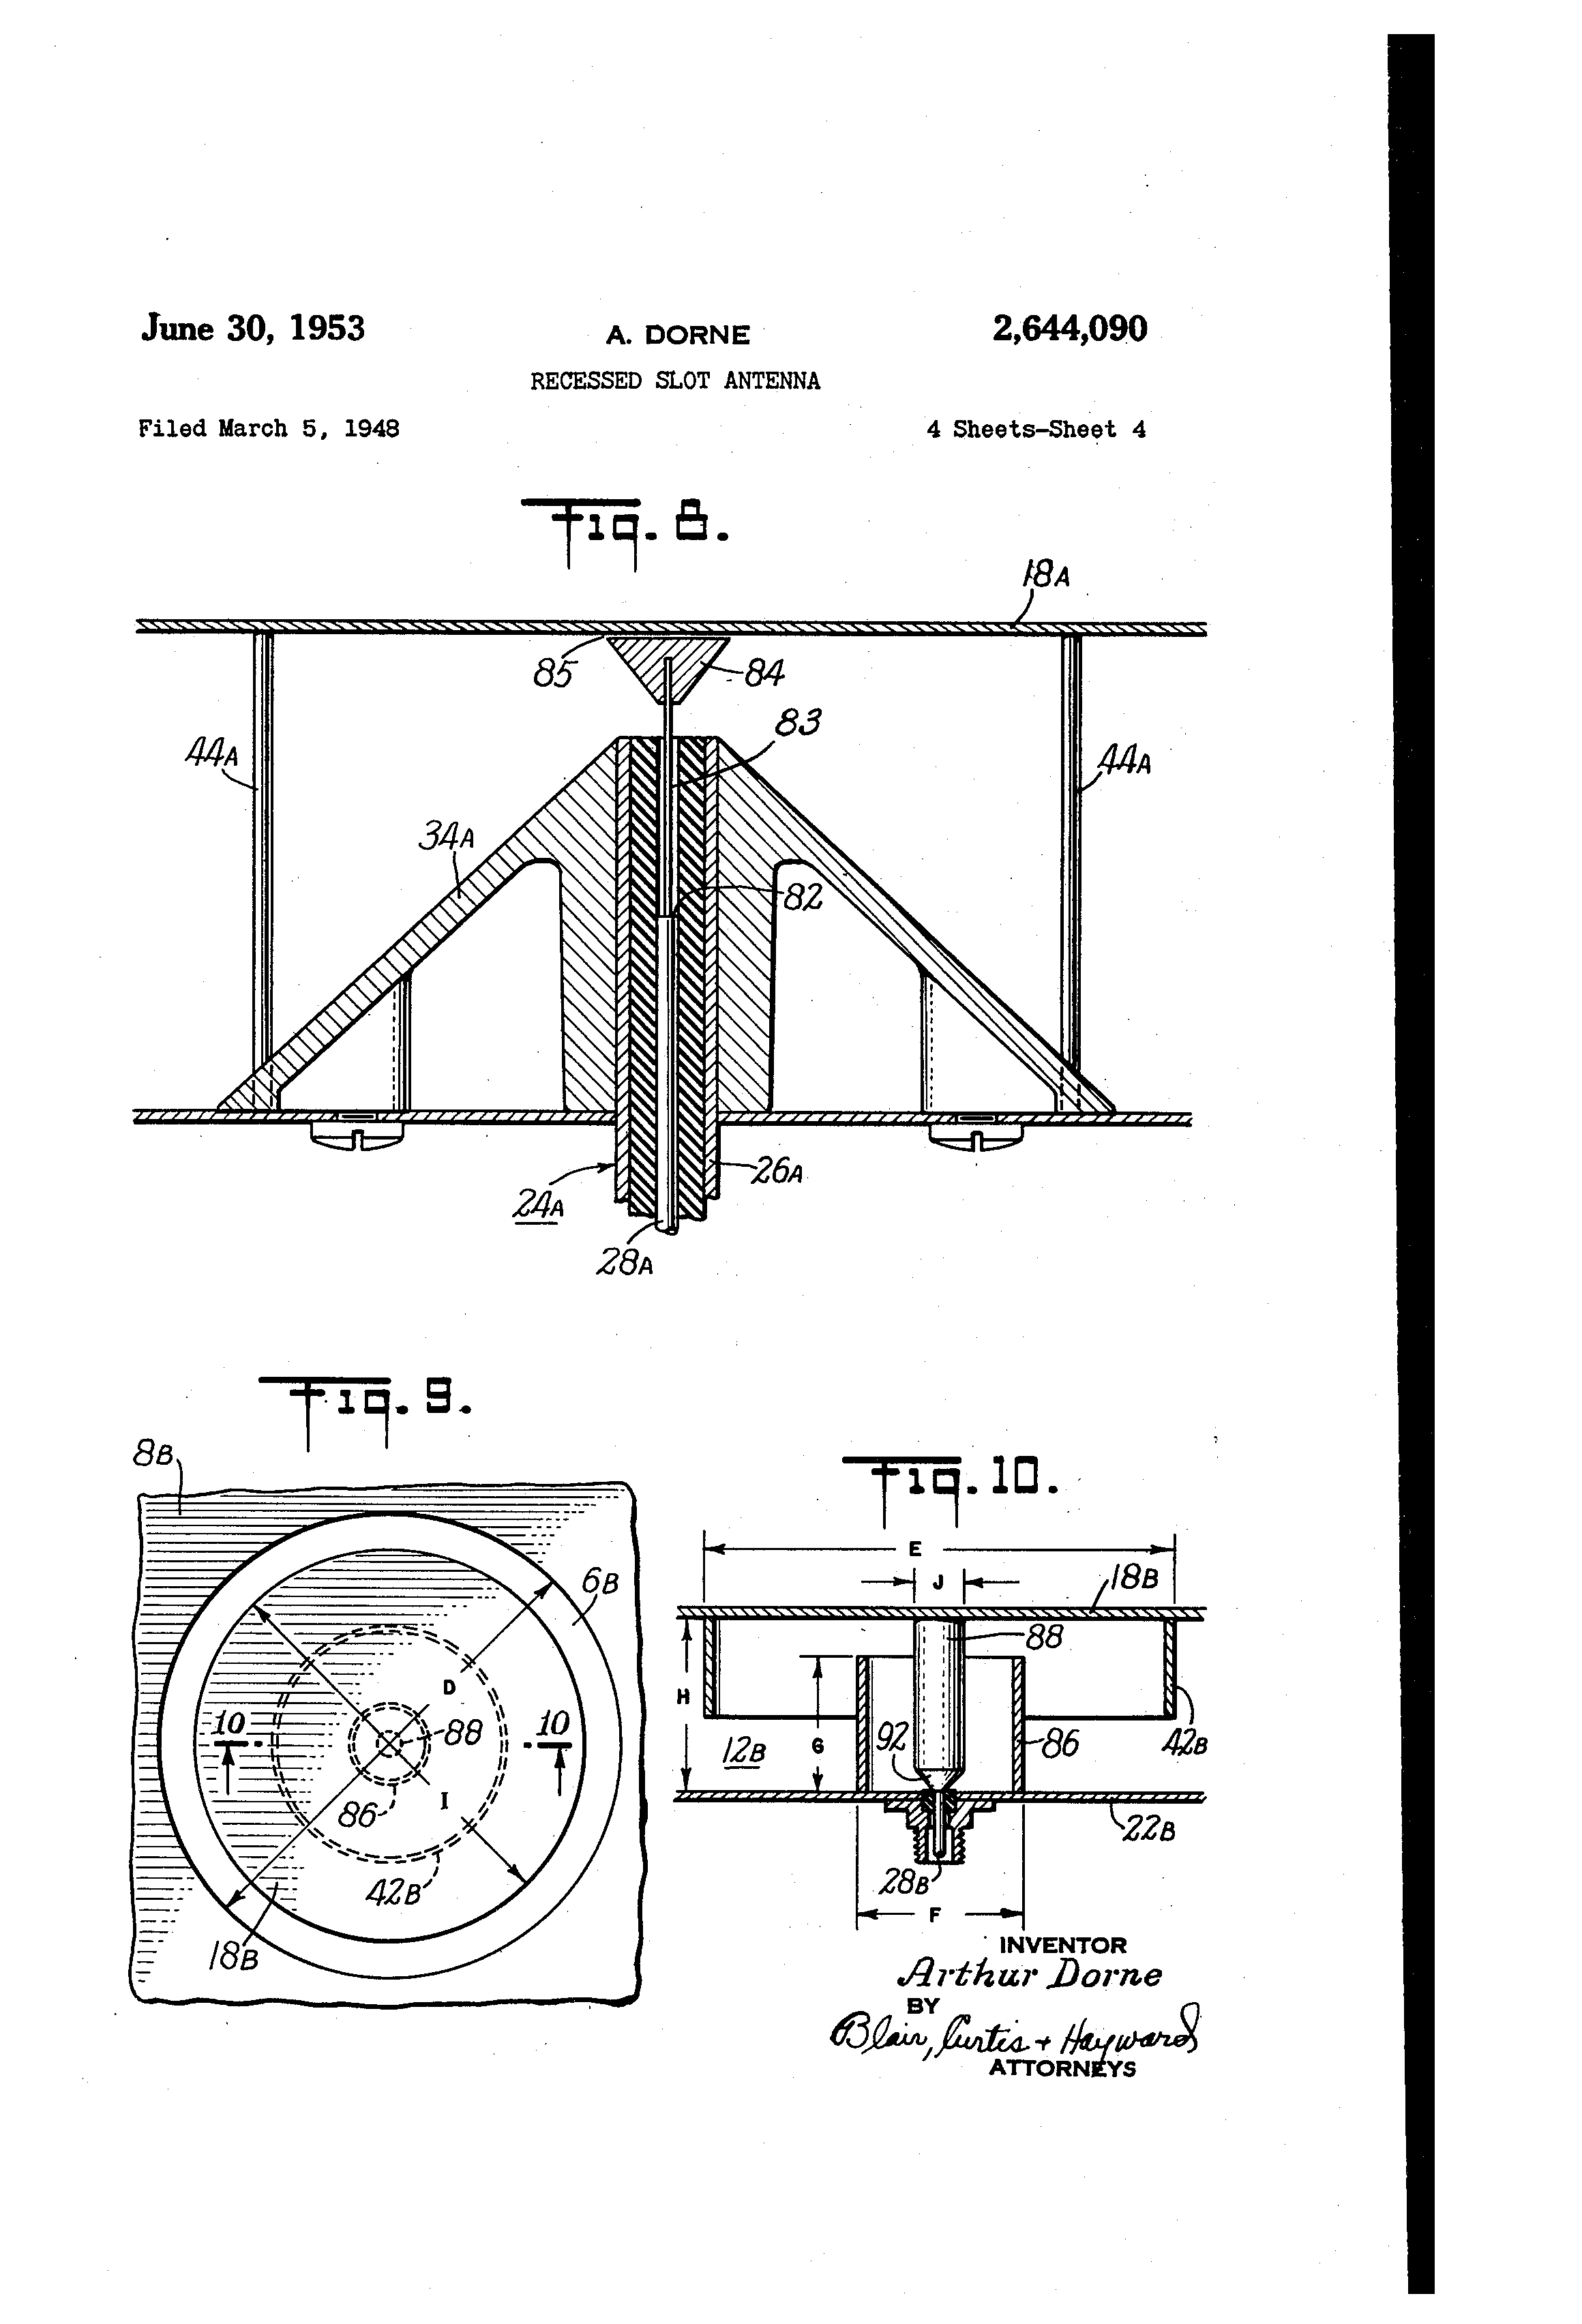 Antenna Patent - Antenna 49 Blog - Google Sites